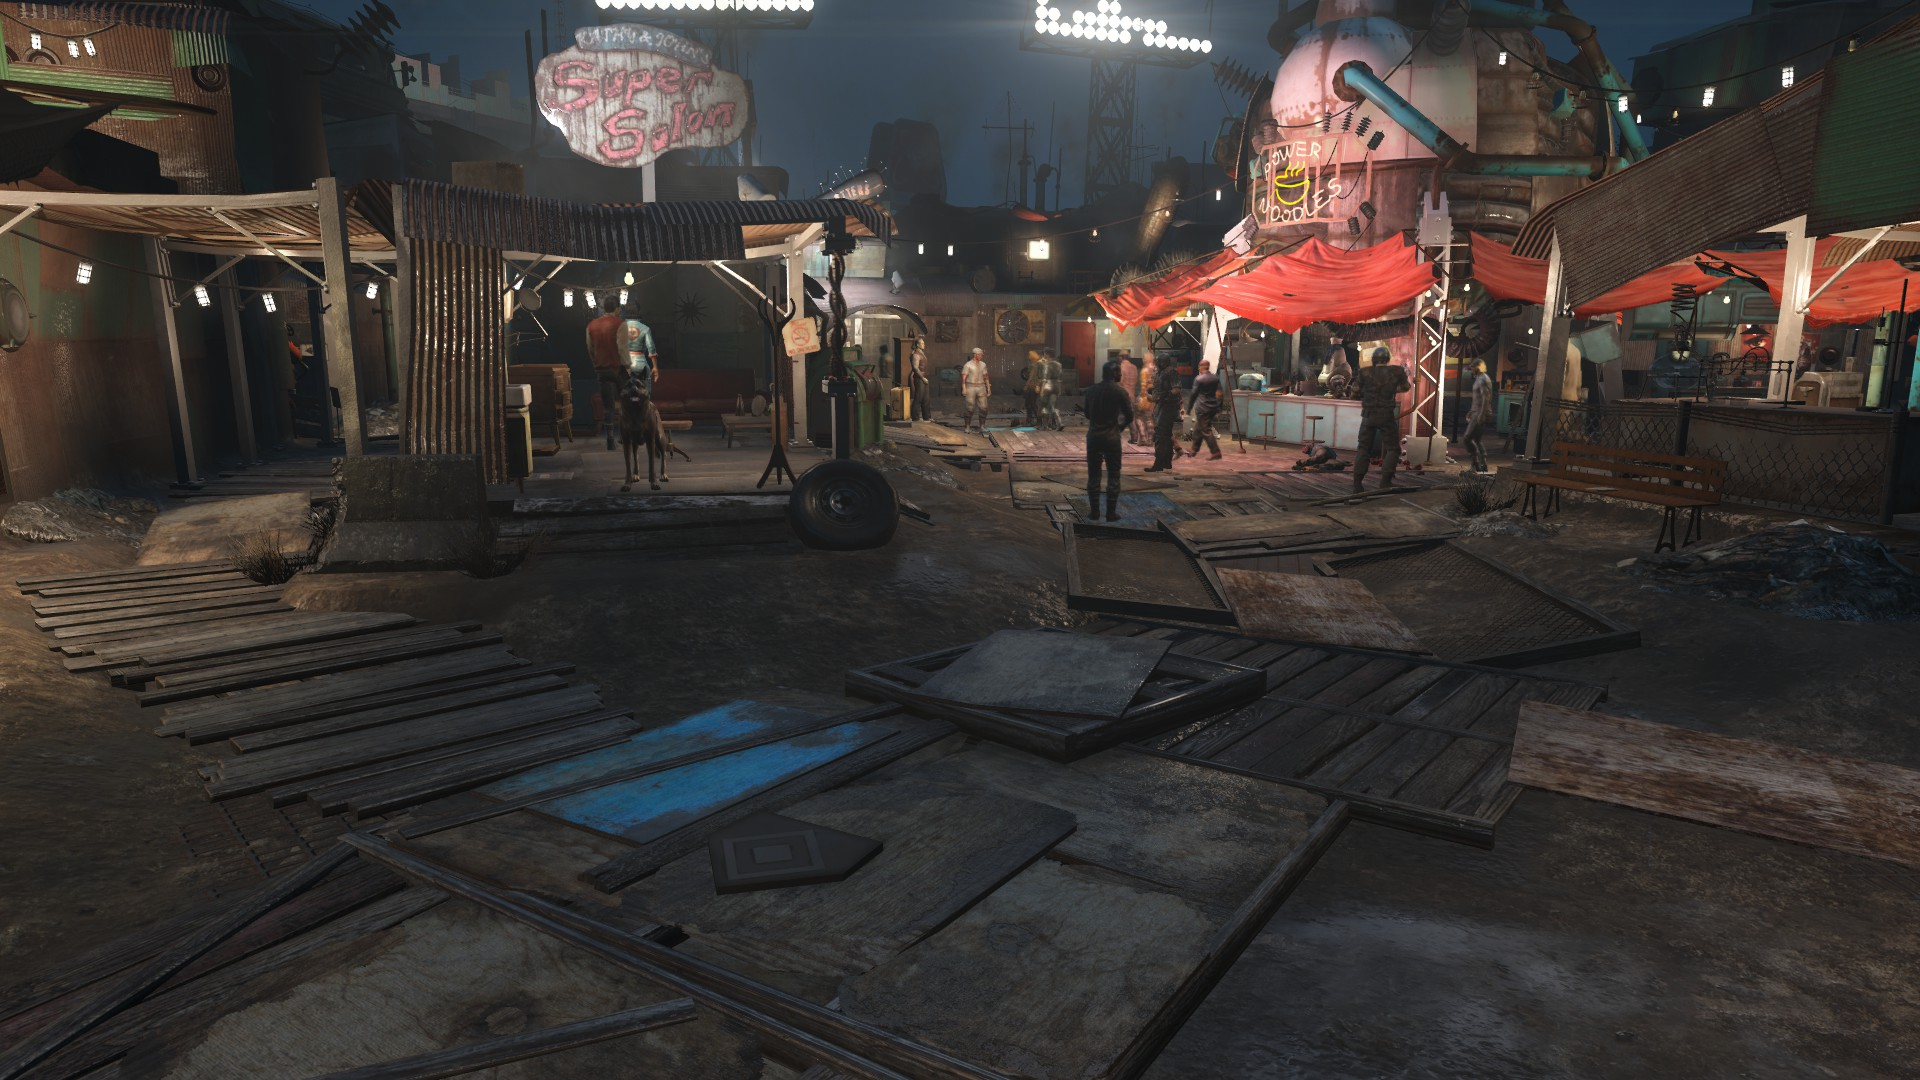 Fallout 4 is the open-world game I can't stop playing